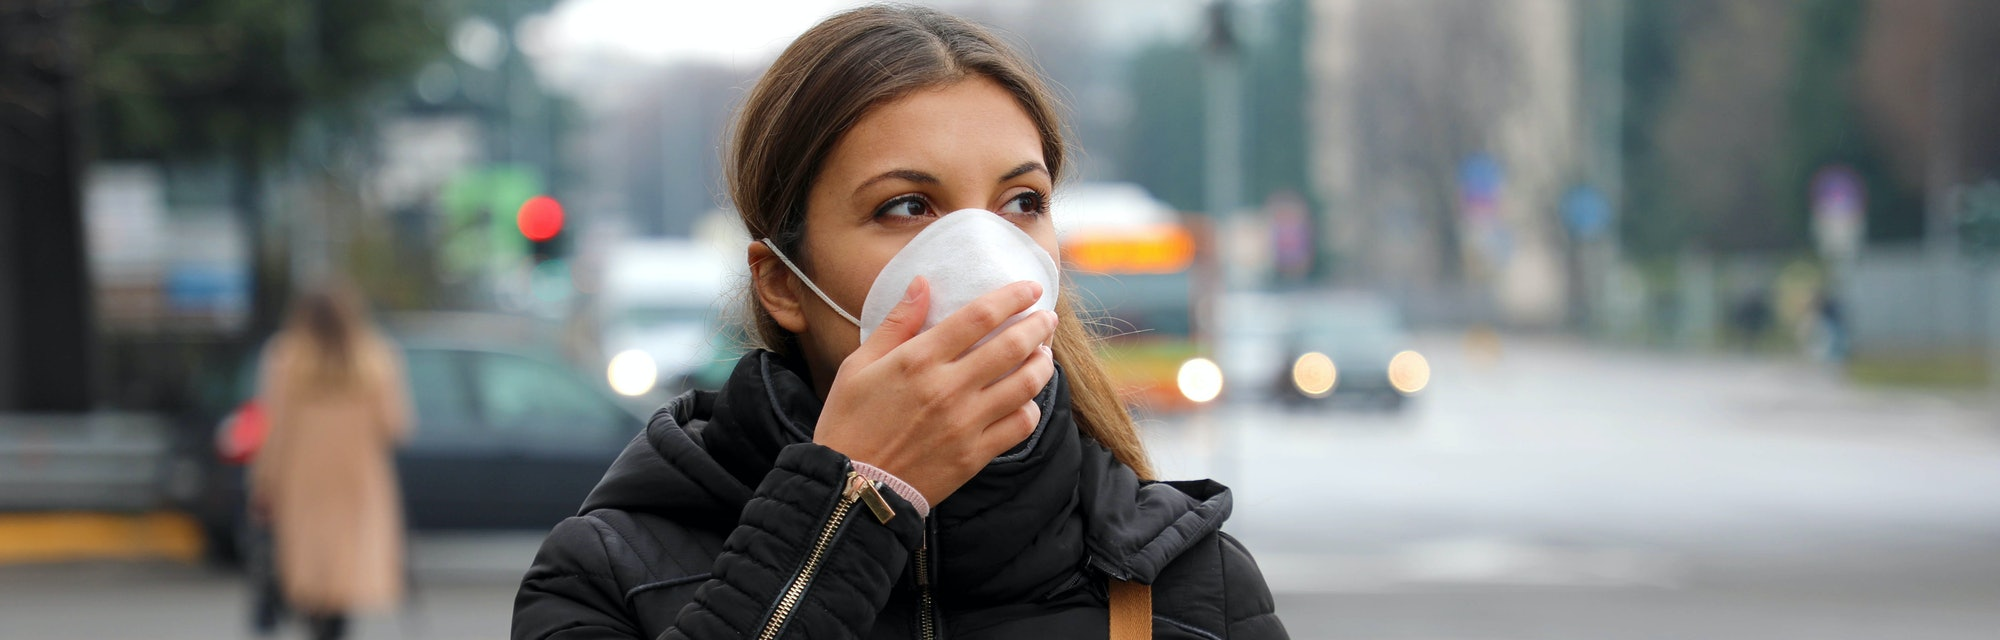 COVID-19 Pandemic Coronavirus Woman in city street wearing face mask protective for spreading of dis...